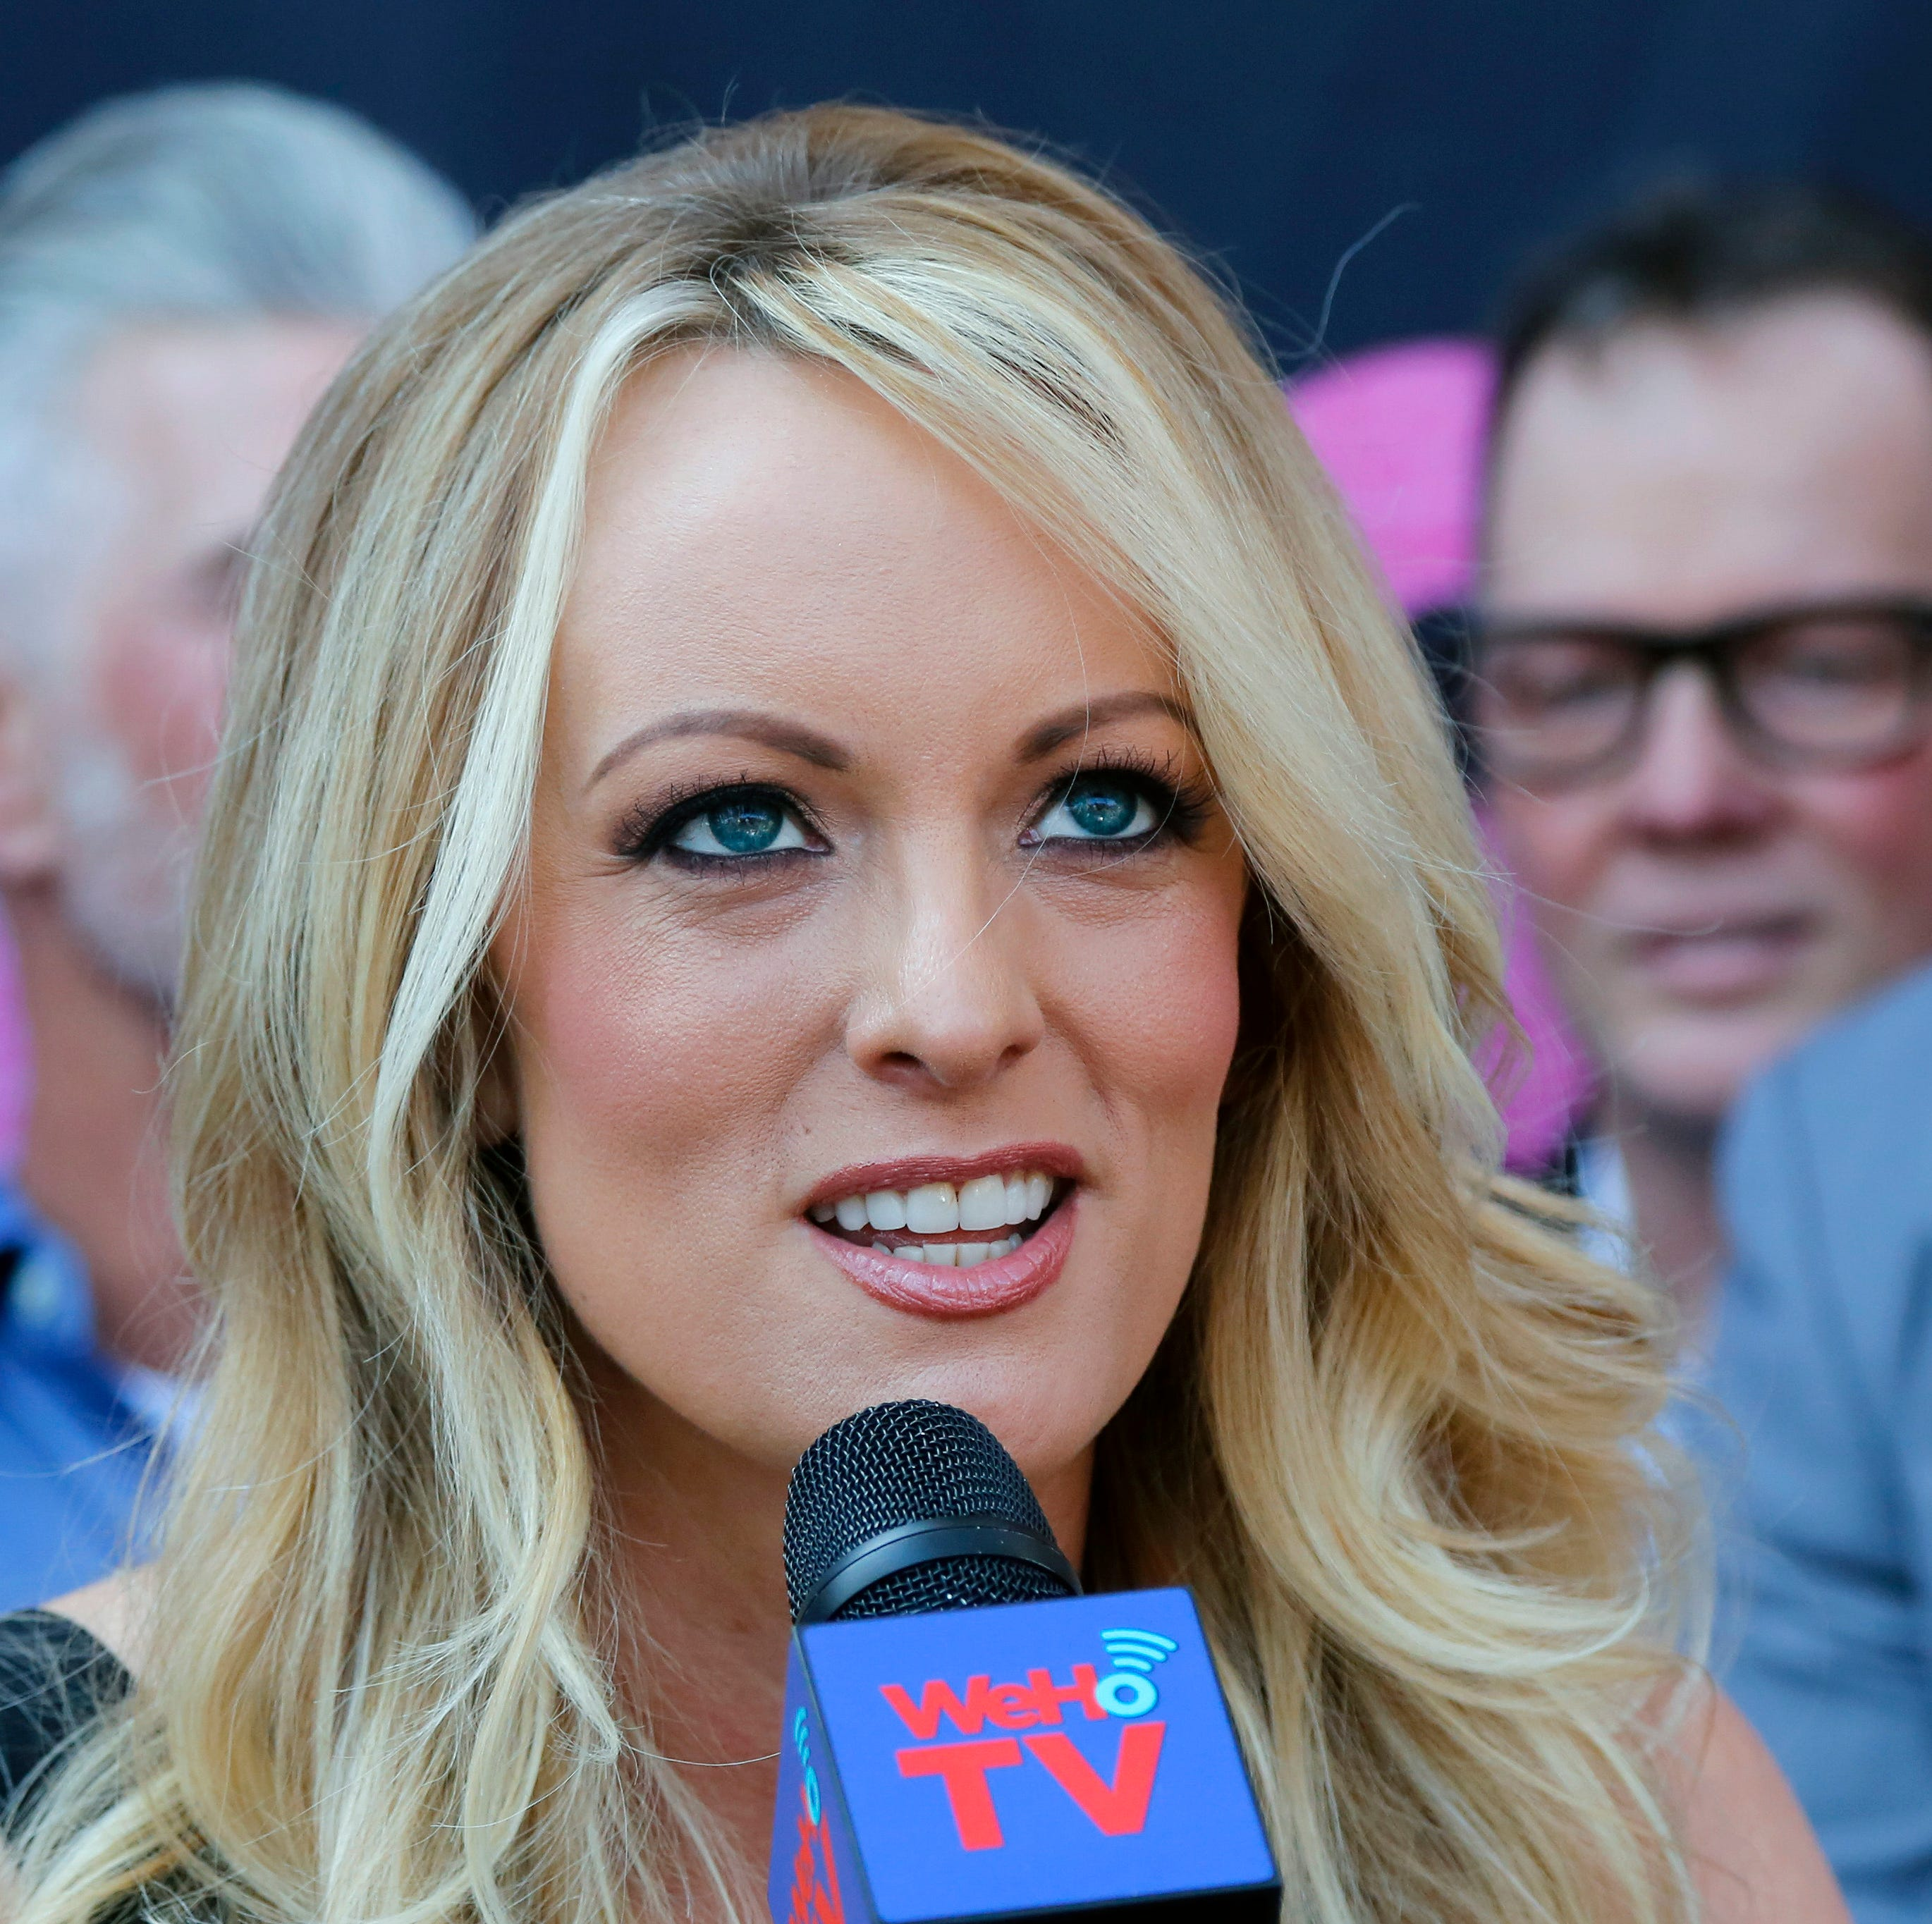 Stormy Daniels backs out of UK's 'Celebrity Big Brother' due to dispute with producers